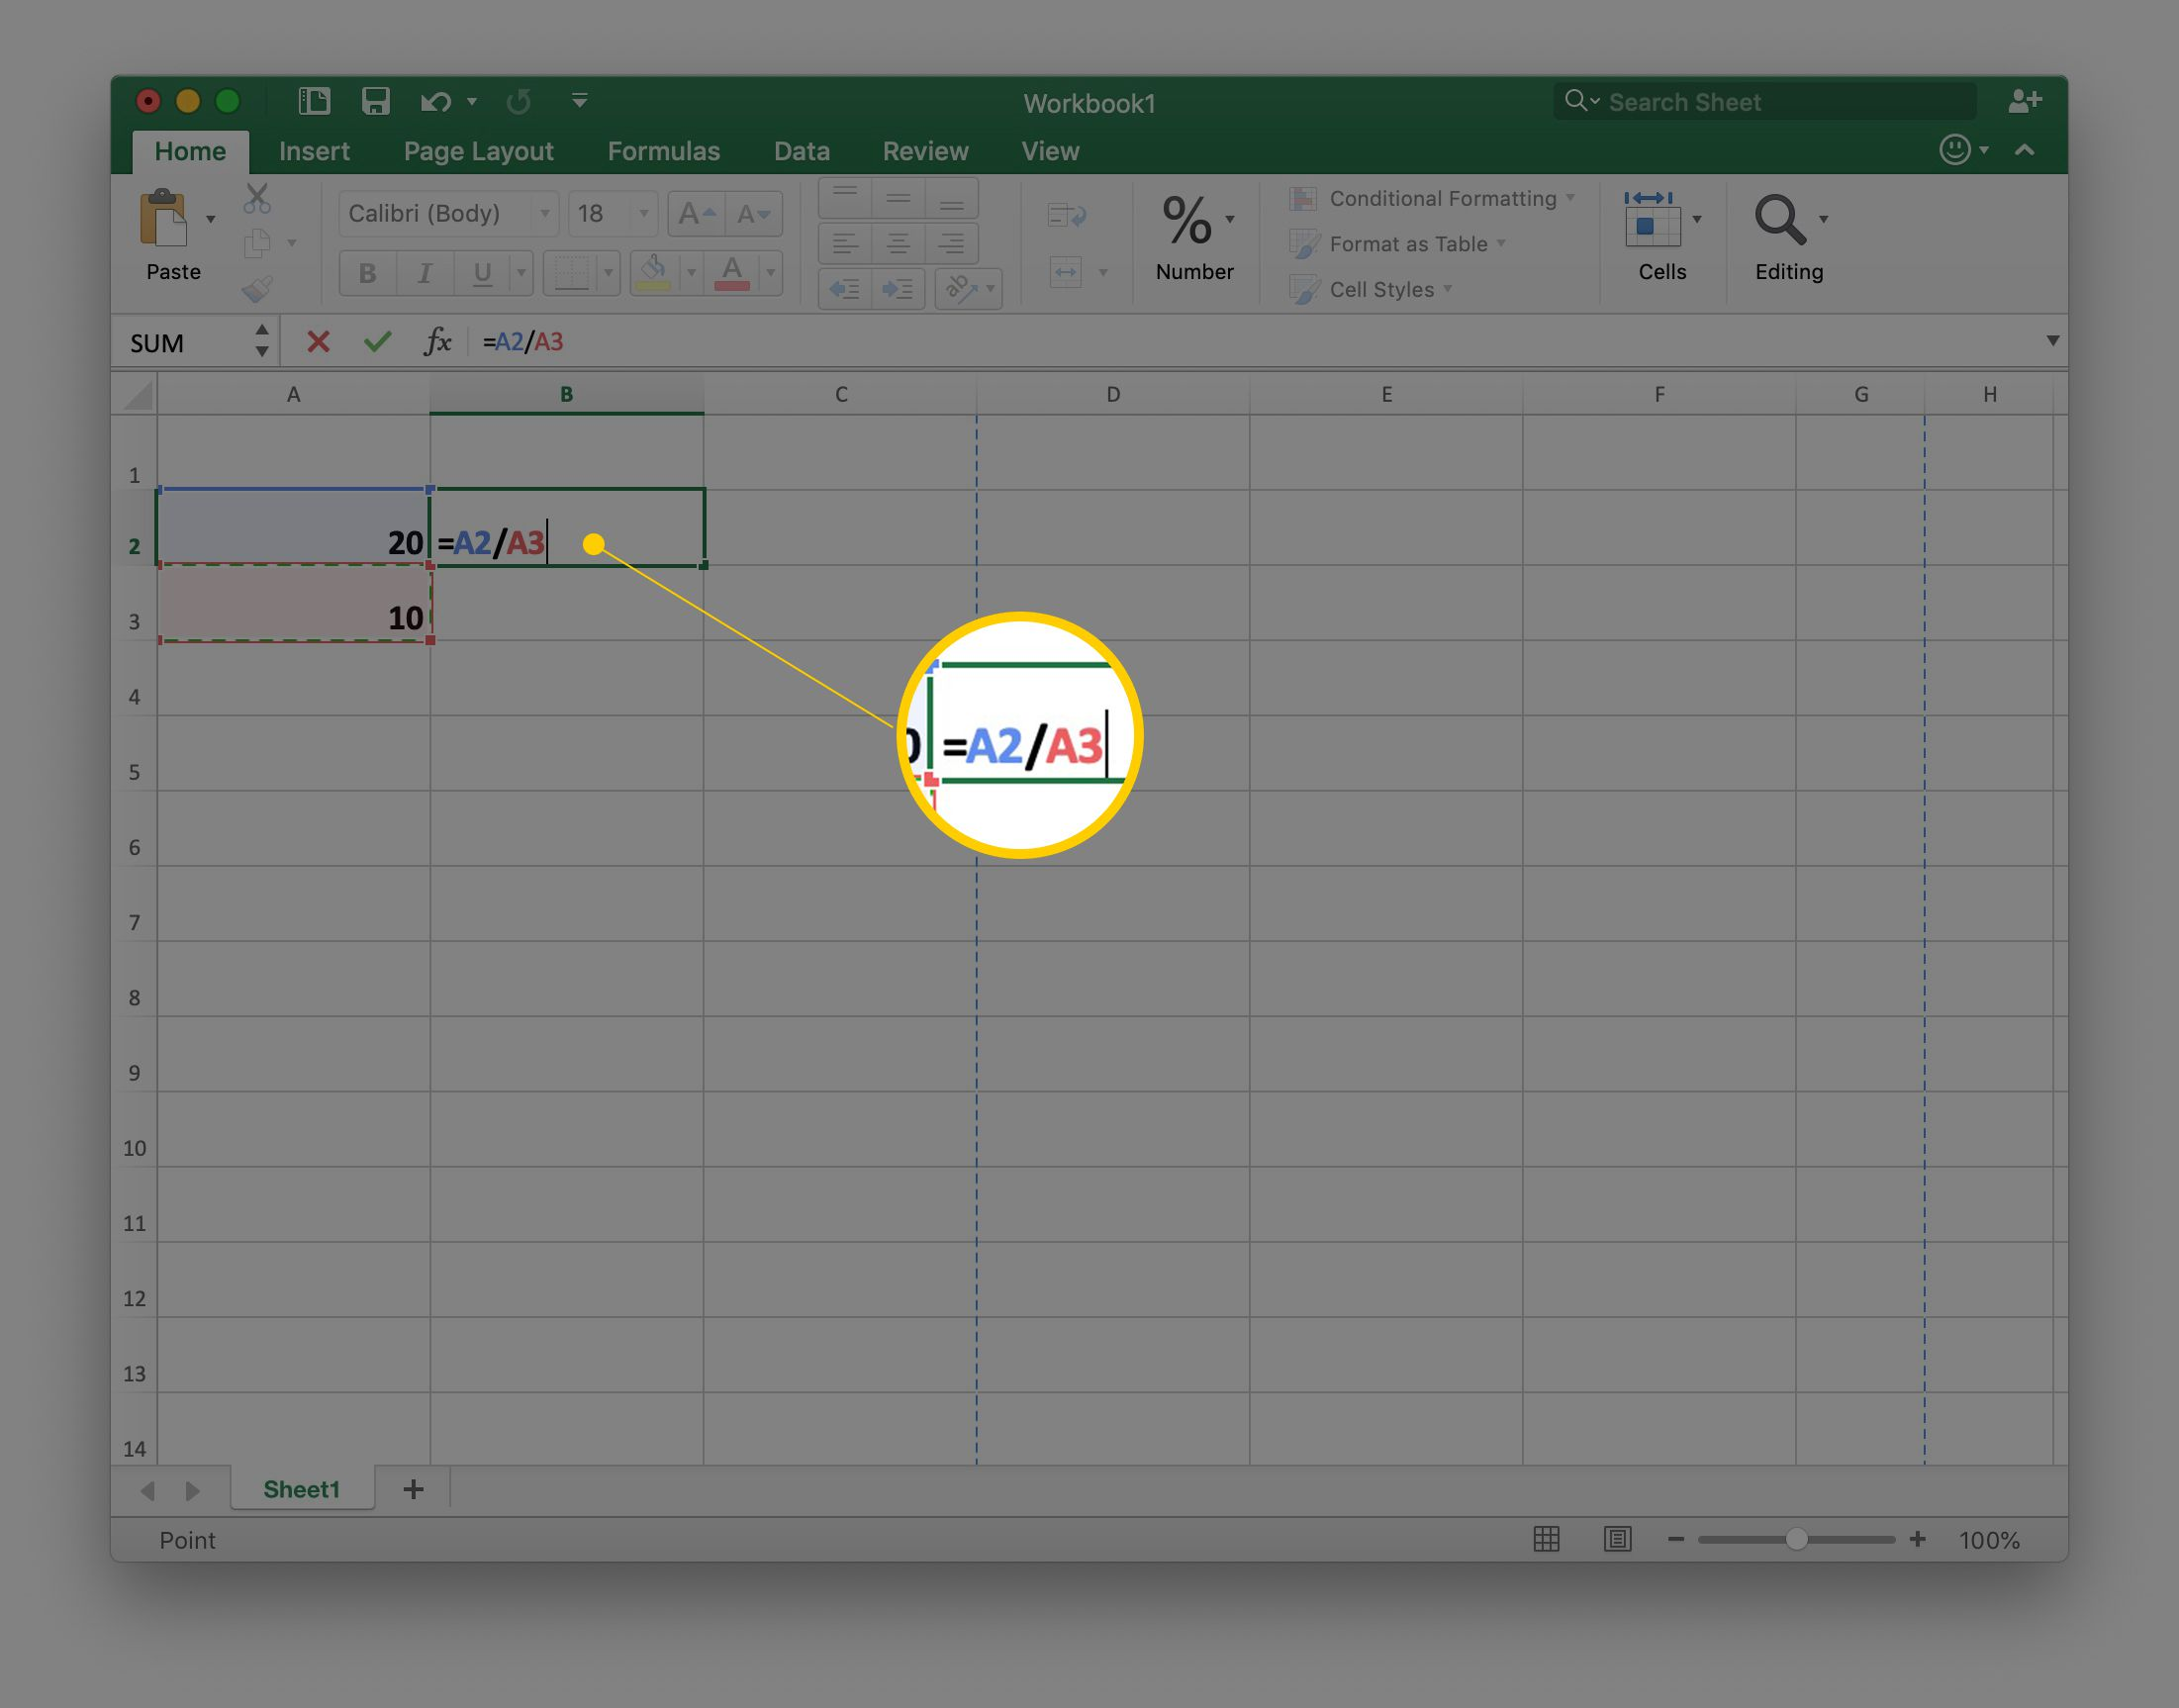 A2/A3 in cell B2 in Excel spreadsheet